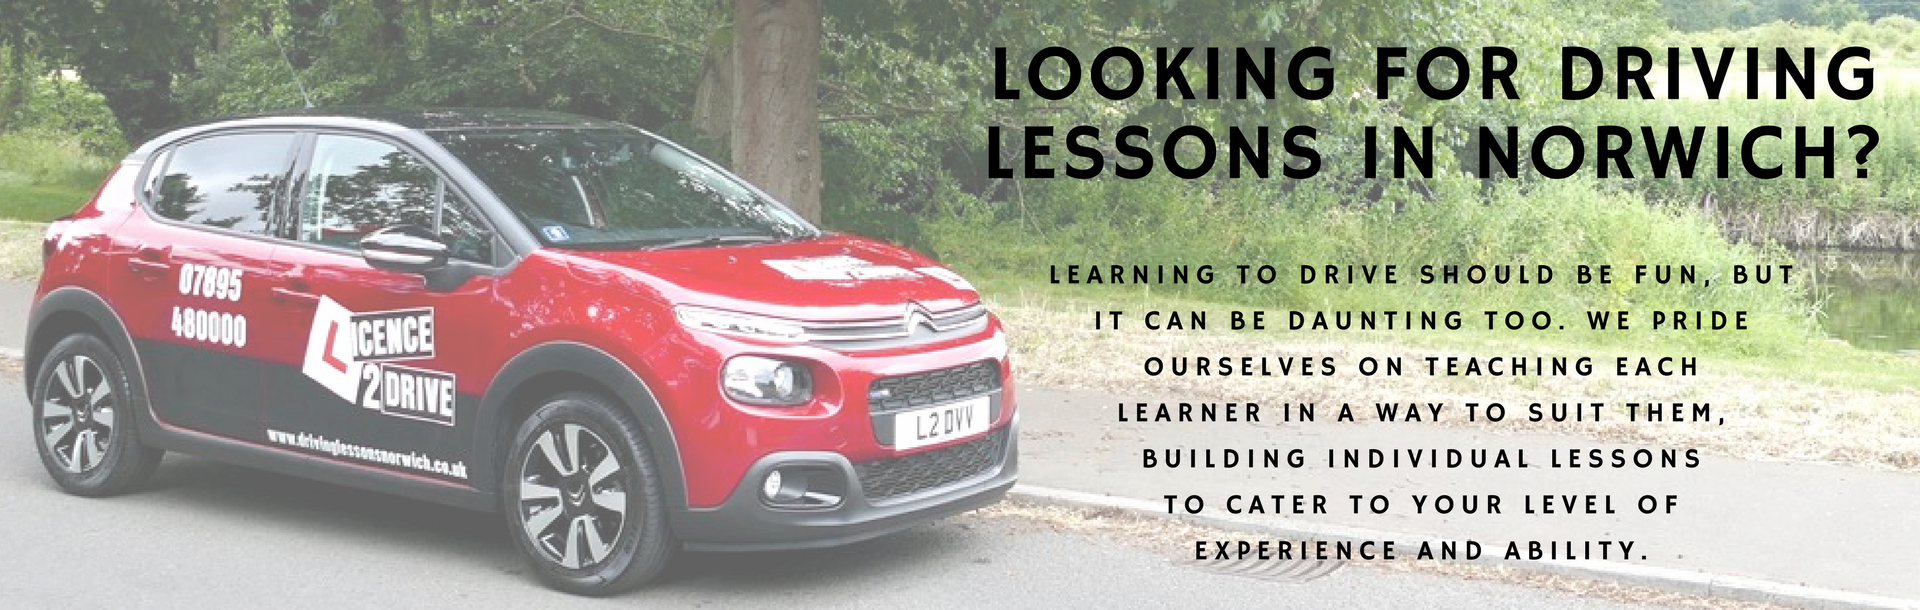 Driving lessons norwich header